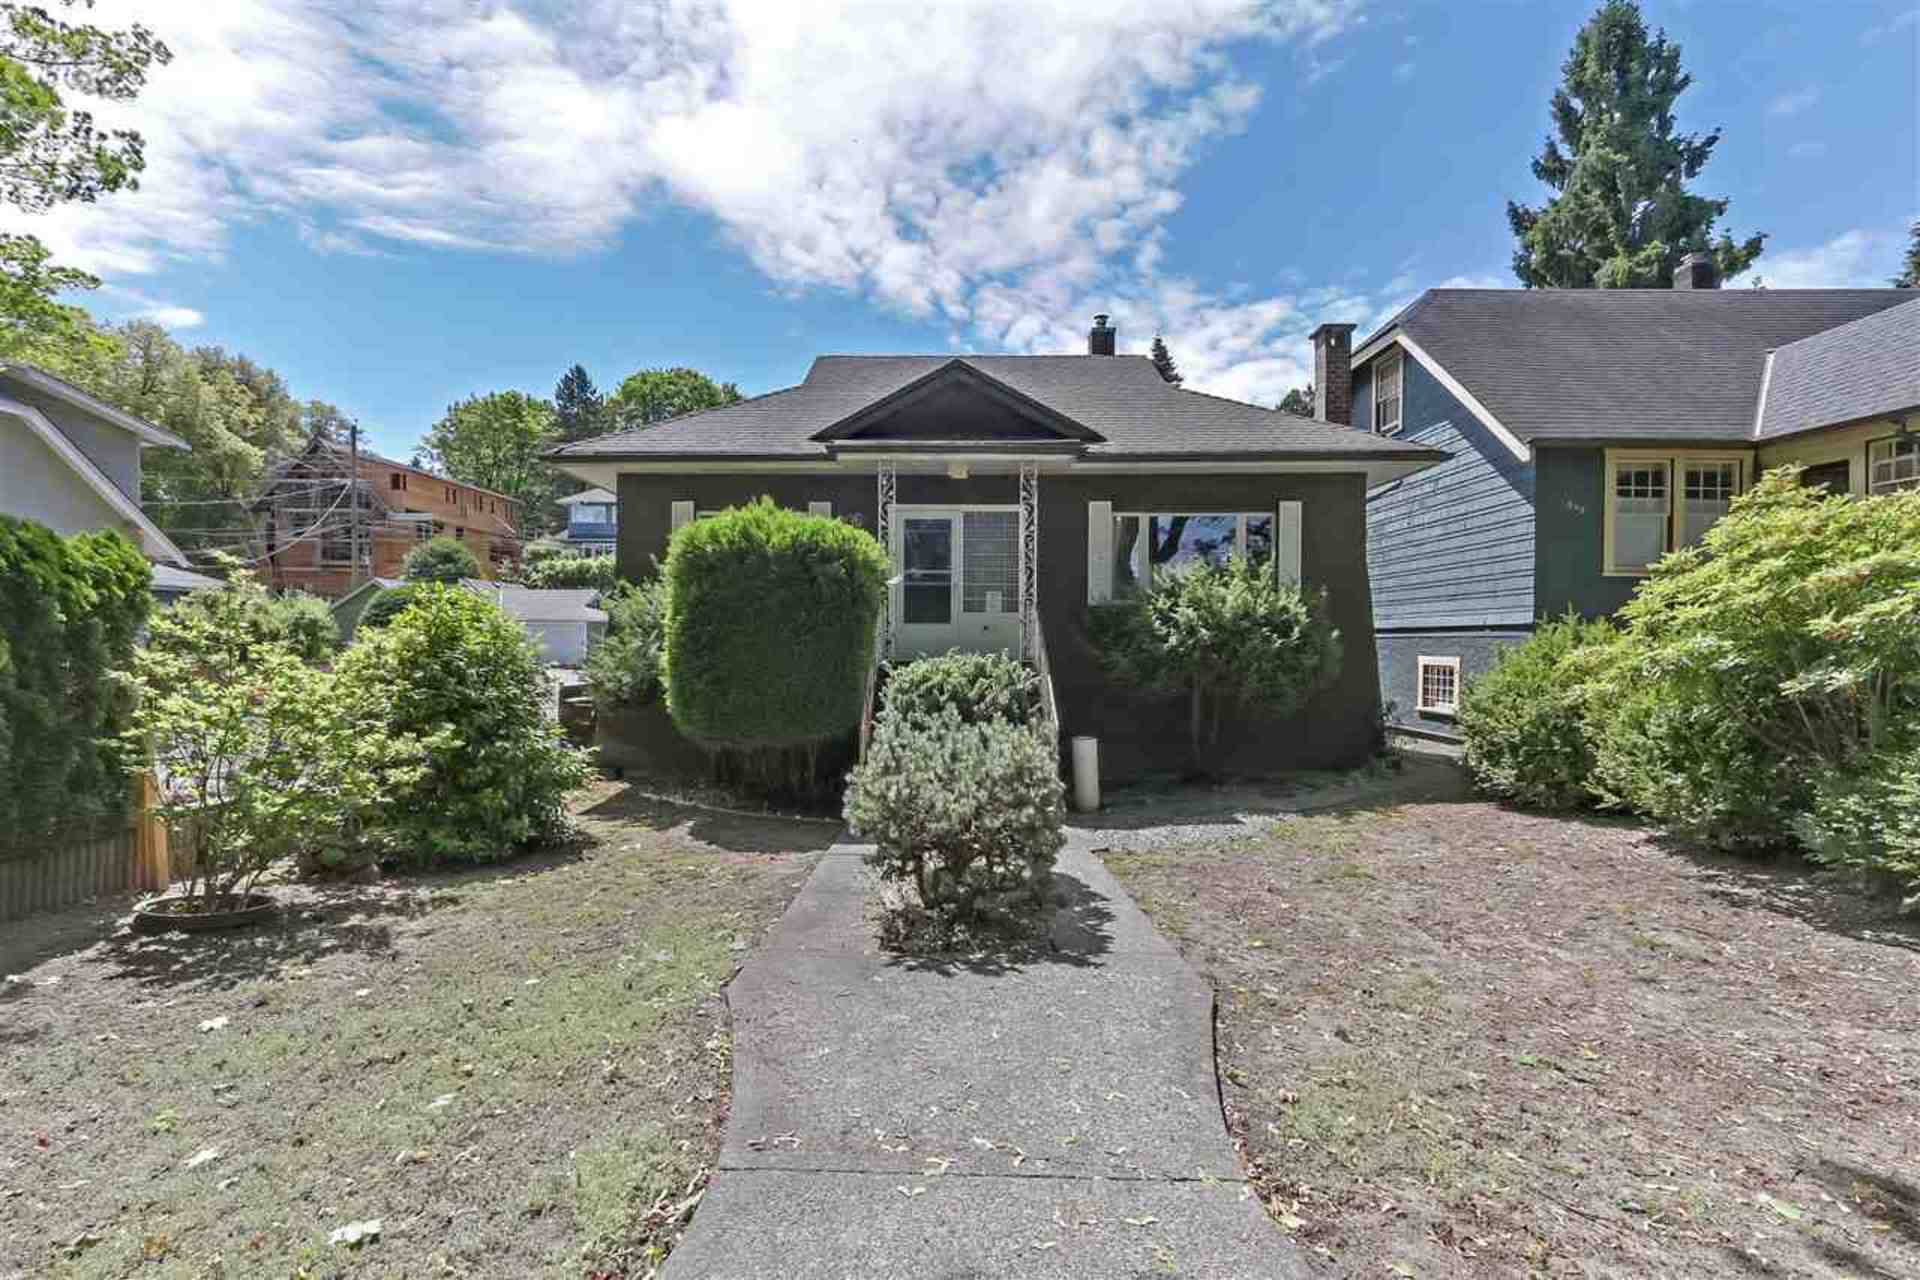 836-w-22nd-avenue-cambie-vancouver-west-01 at 836 W 22nd Avenue, Cambie, Vancouver West